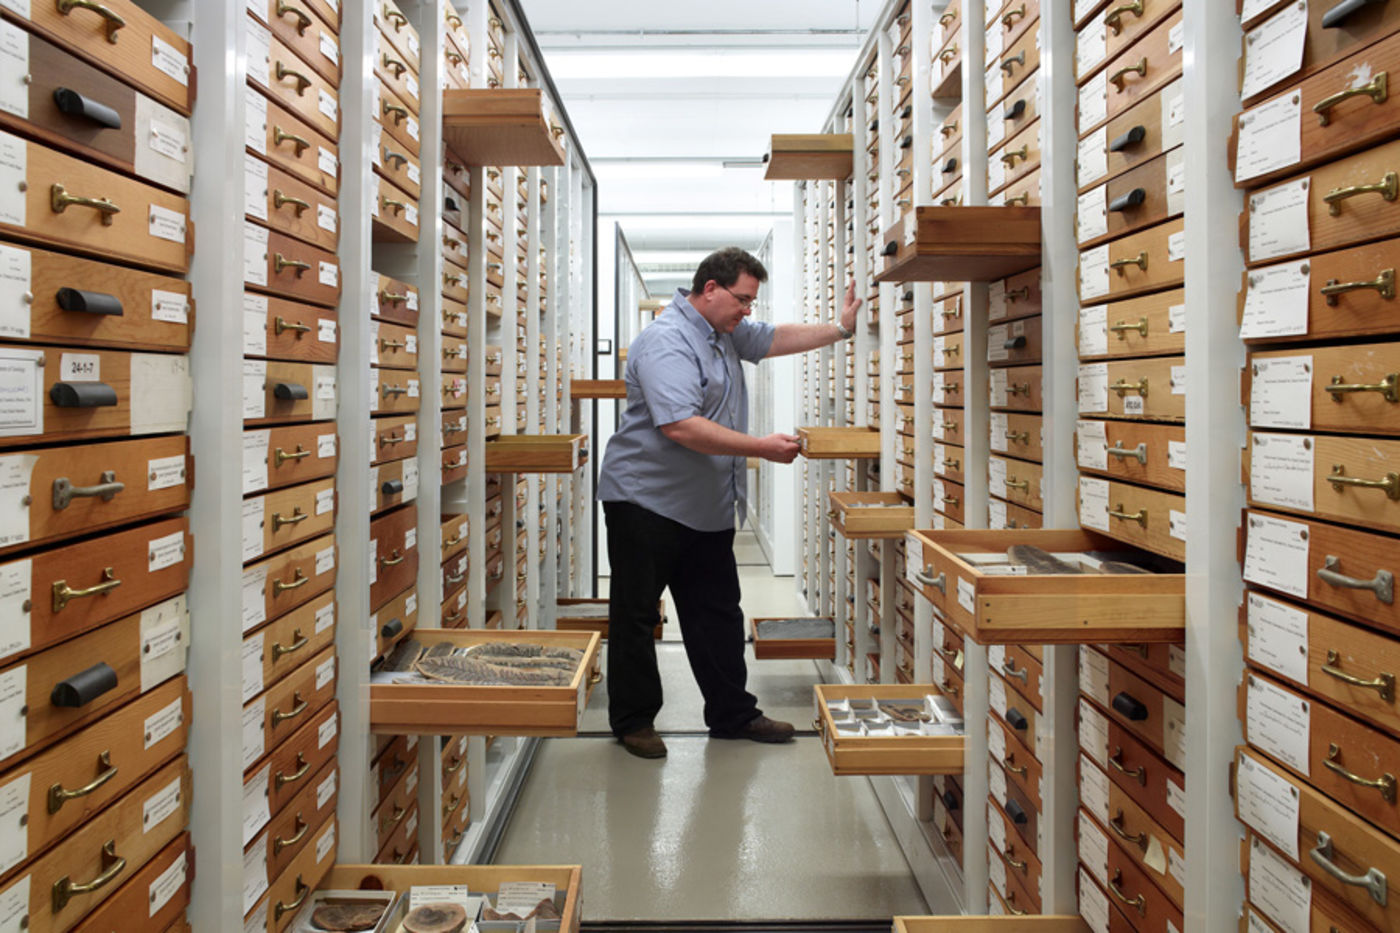 In a storage area for geology collections, a staff member pulls open a drawer to view an item. Other drawers are open around him with geology specimens visible.